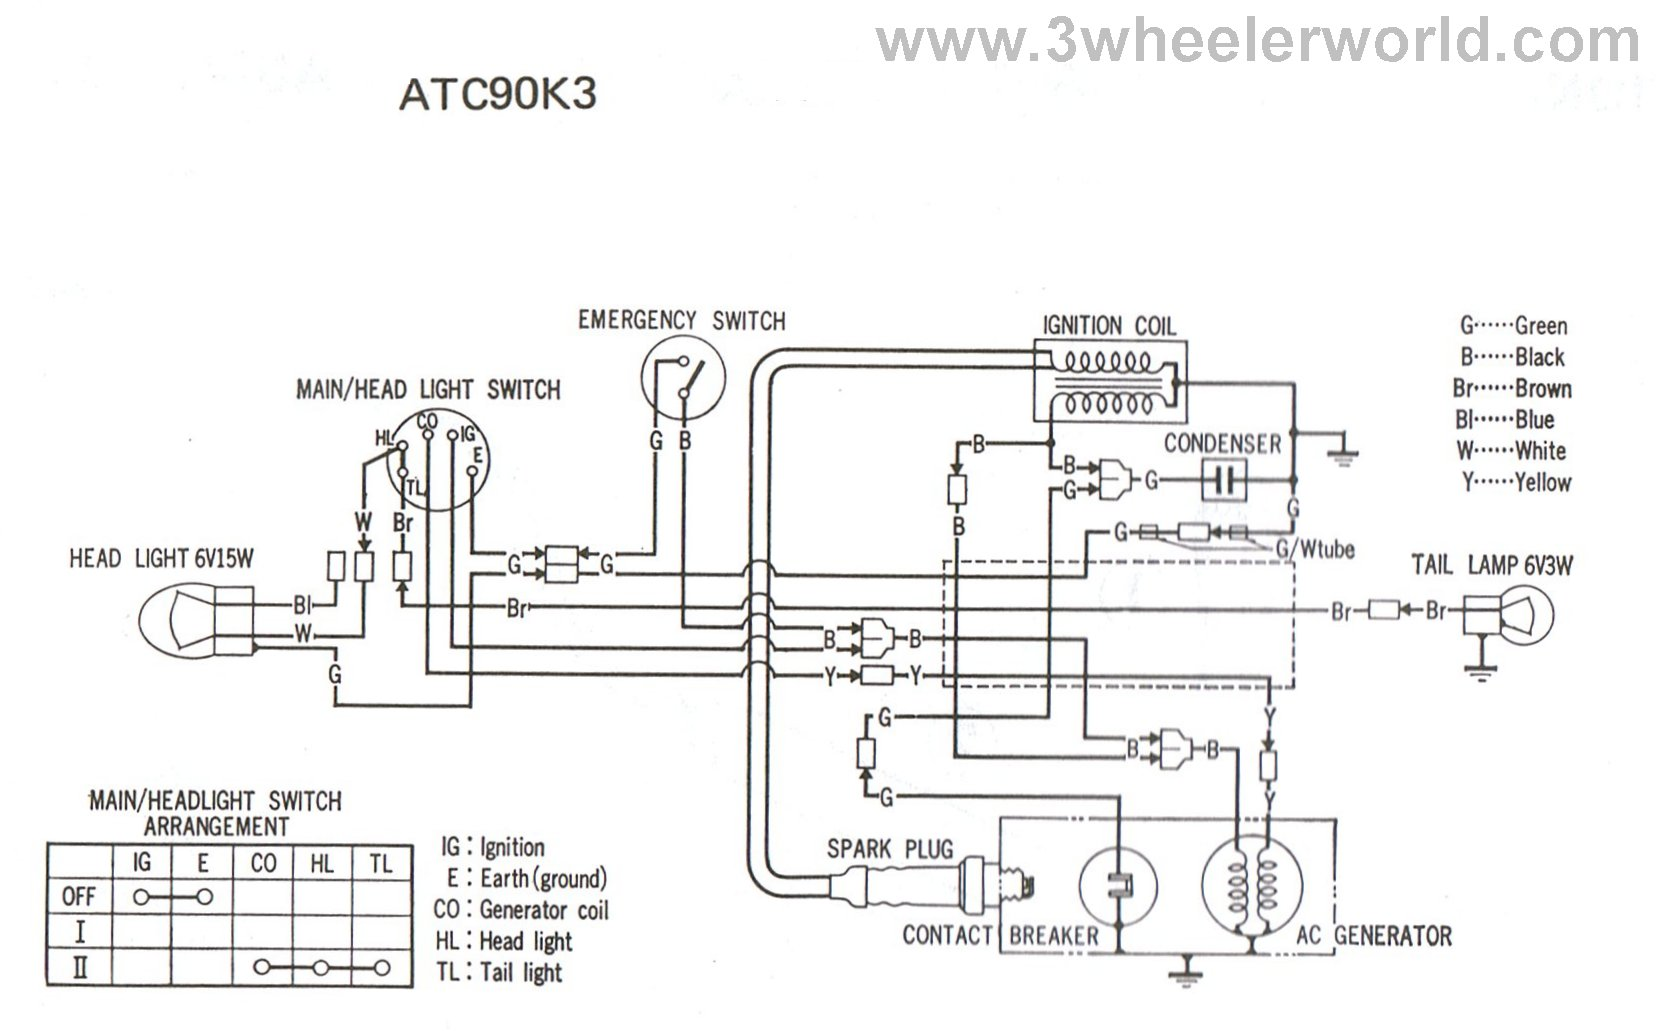 polaris scrambler 90 wiring diagram polaris get free image about wiring  diagram 2001 Arctic Cat 250 Wiring Diagram Arctic Cat Snowmobile Wiring  Diagrams